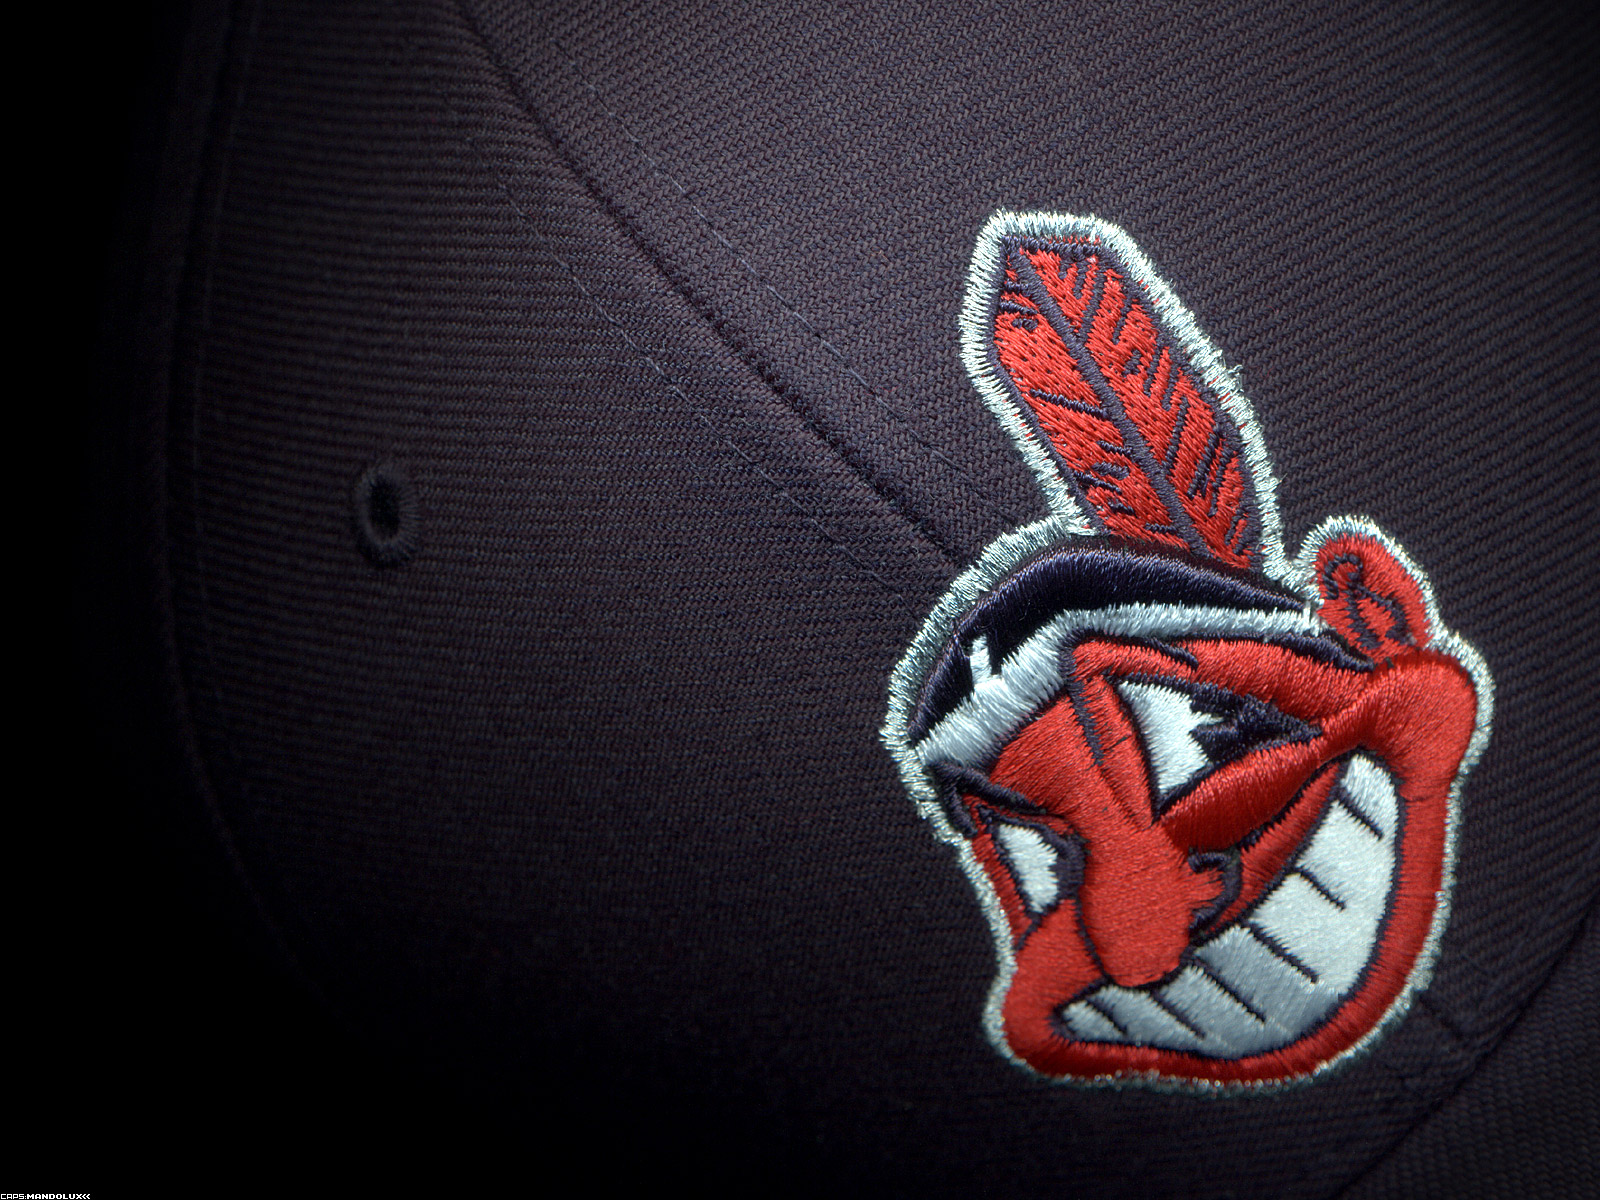 1600x1200 - Cleveland Indians Wallpapers 11